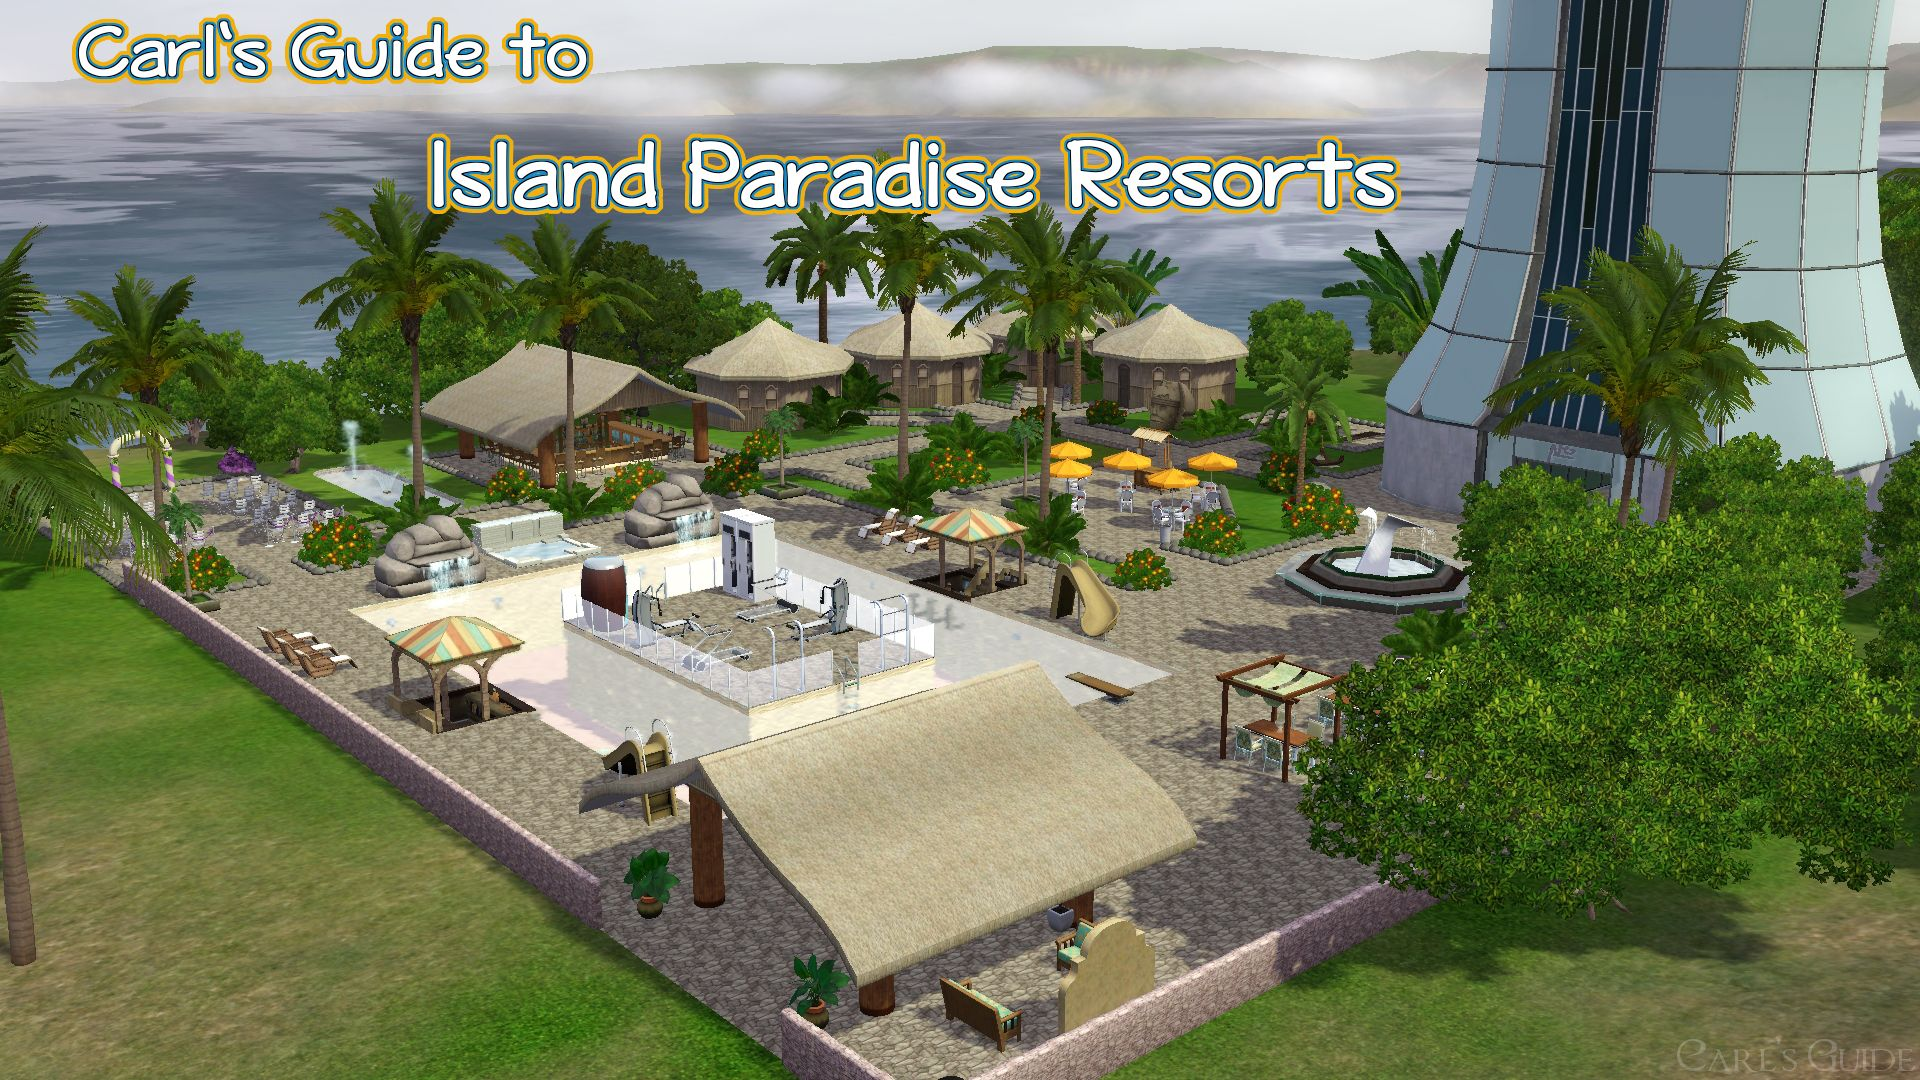 Sims 3 Island Paradise Resorts Strategy Guide and Tips Sims Modern Kitchen Ideas Html on sims 3 house plans, sims 3 library, sims 3 layouts, sims 3 terrace, sims 3 fully furnished, sims 3 family, sims 3 small apartment, sims 3 deck, sims 3 building ideas, sims 3 pool, sims 3 windows, sims 3 hardwood floors, sims 3 washer and dryer, sims 3 microwave, sims 3 interior design, sims 3 bathroom design, sims 3 luxury bathroom, tetris modern kitchen, sims 3 living, sims 3 pets,